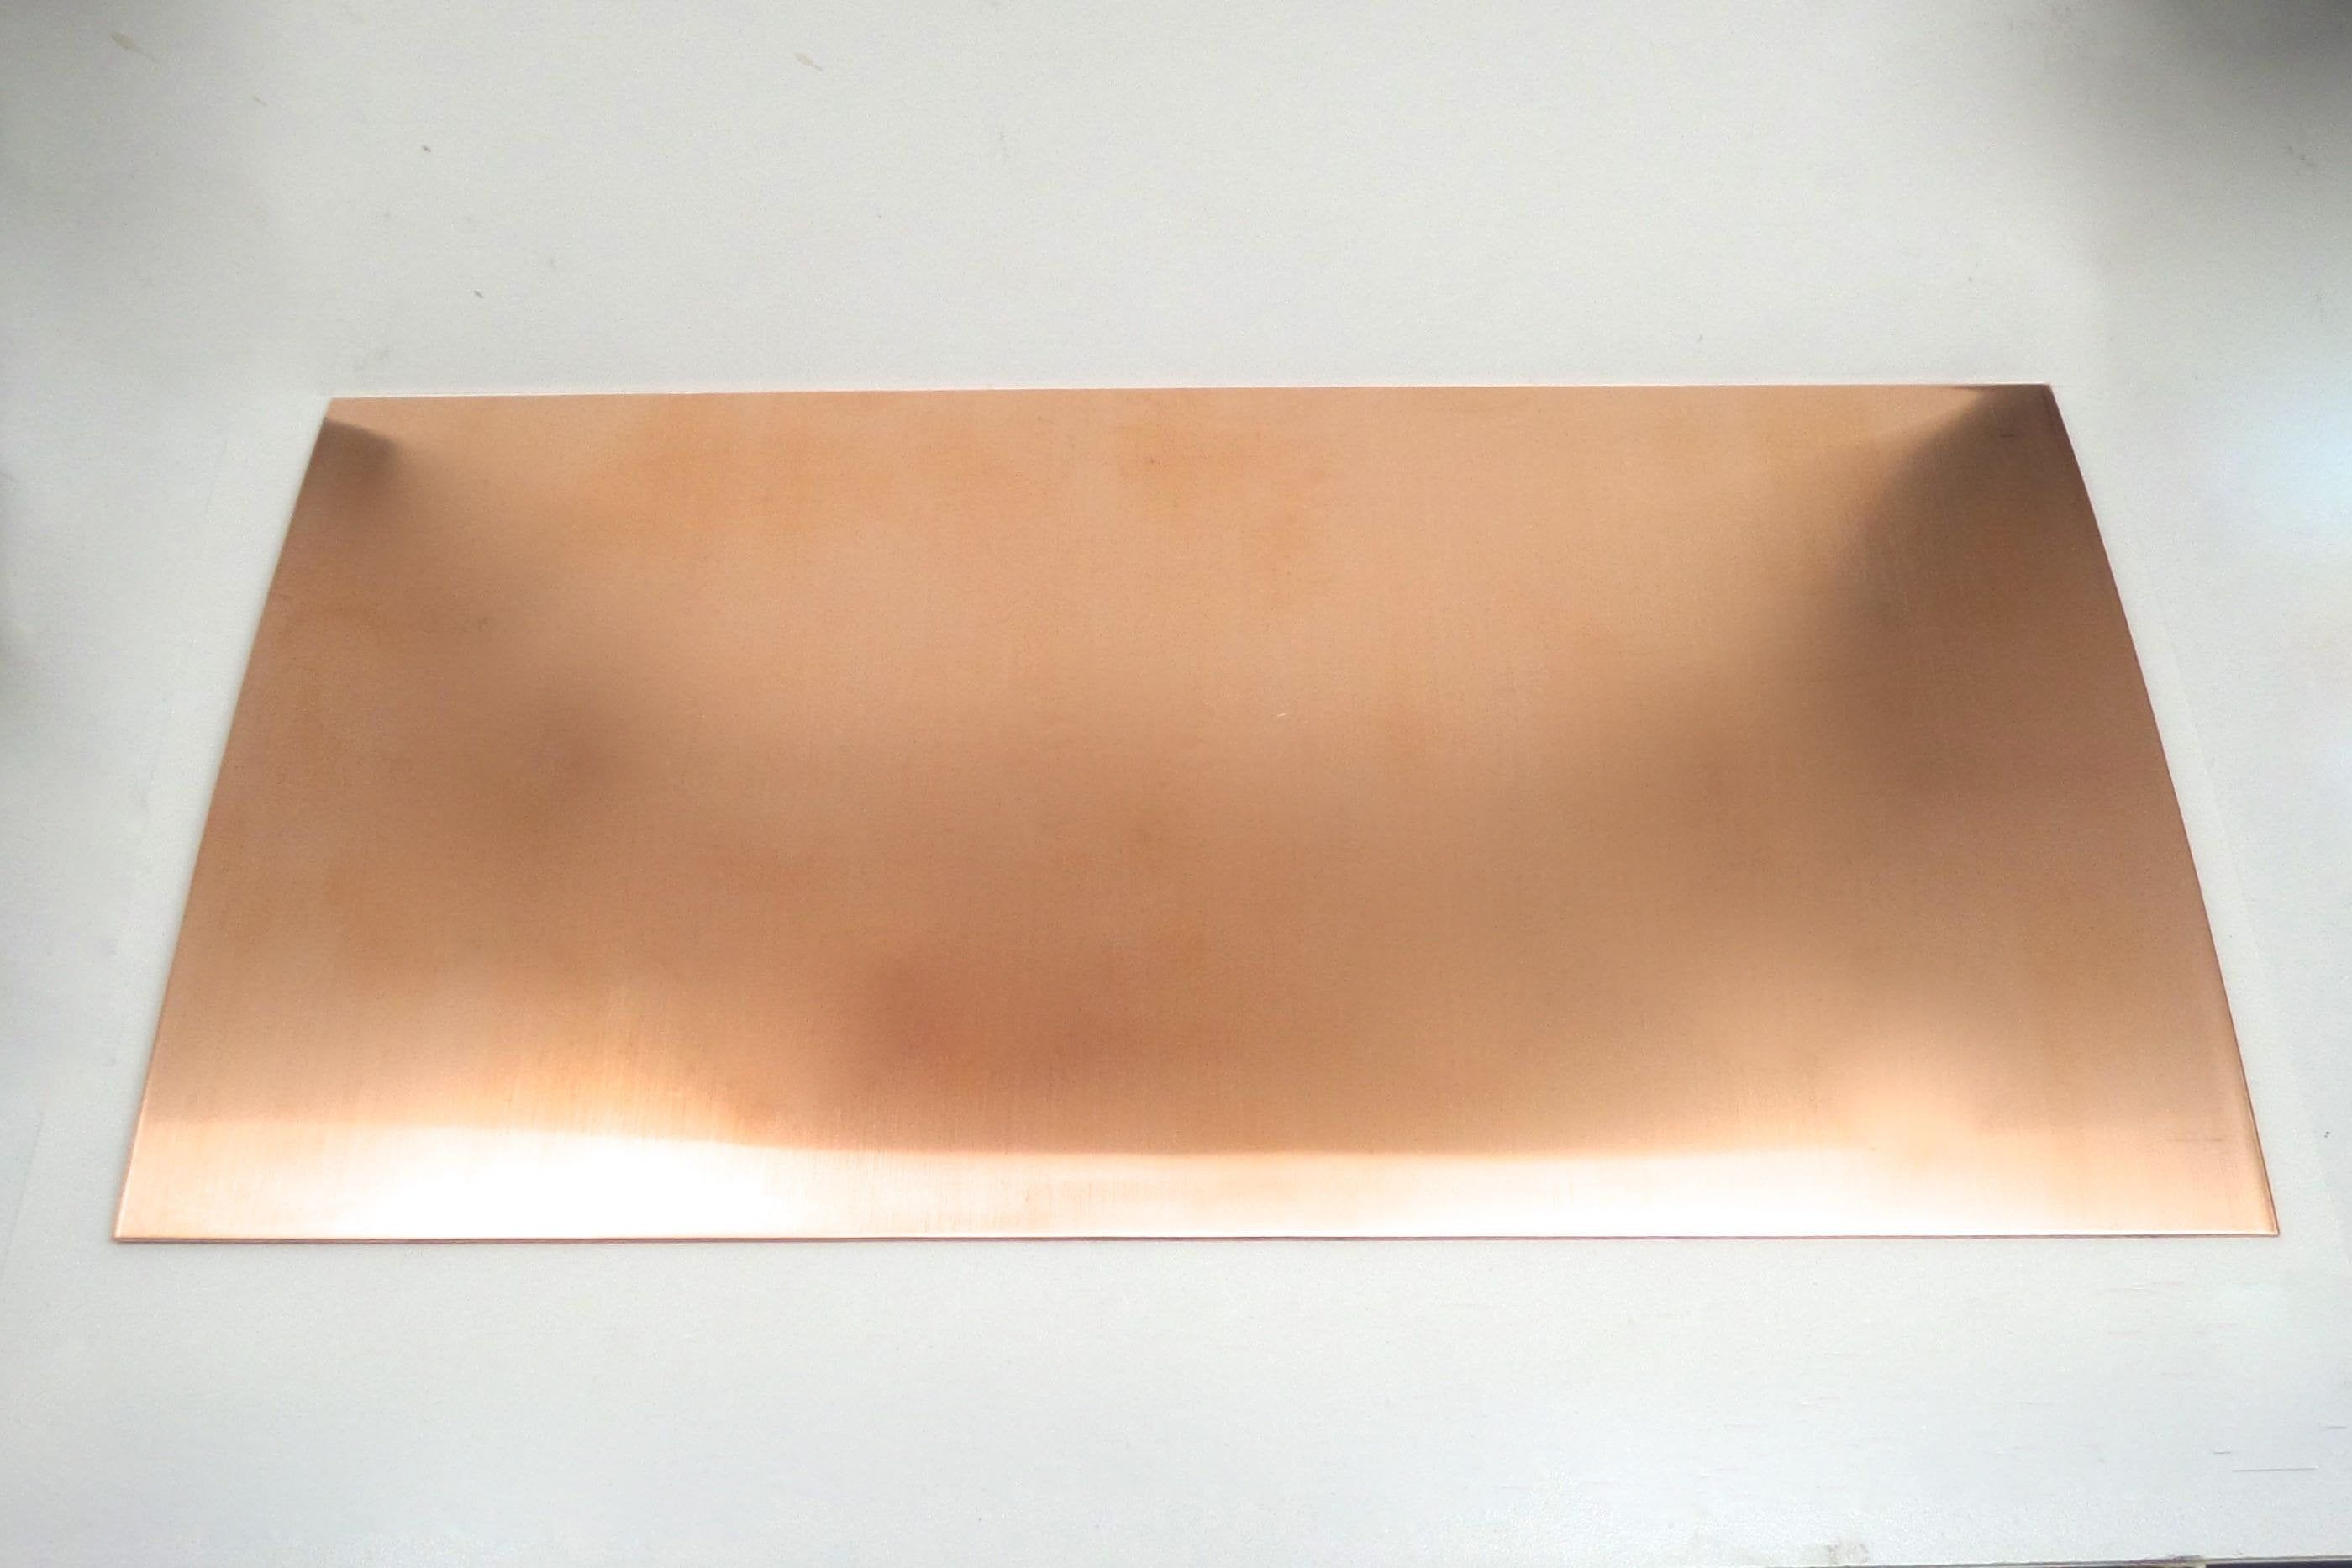 Deals Copper Sheet 18g Copper Sheet 6 X 12 18 Etsy In 2020 Metal Stamping Supplies Copper Sheets Sheet